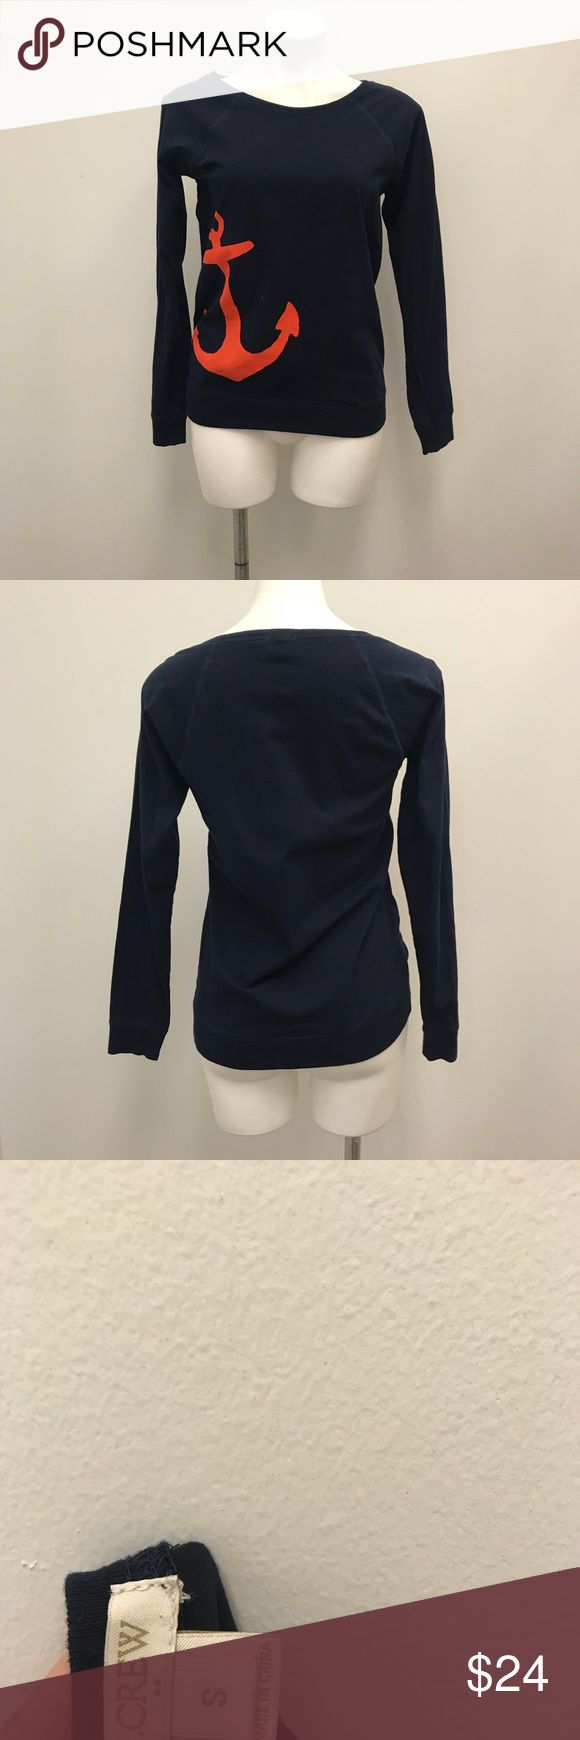 J. Crew factory size s navy nautical anchor top Cute and nautical is always in so why not embrace this navy long sleeved pullover from J. Crew Factory in a size small. This piece is a deep navy with red accent anchor on one side. It is in good condition with light wear from use. It is made of 100 % cotton and measures approximately 25 inches from neck seam to bottom hem, and 17.5 inches from armpit to armpit when laid flat to measure. It does not have defined shoulder seams so measuring…